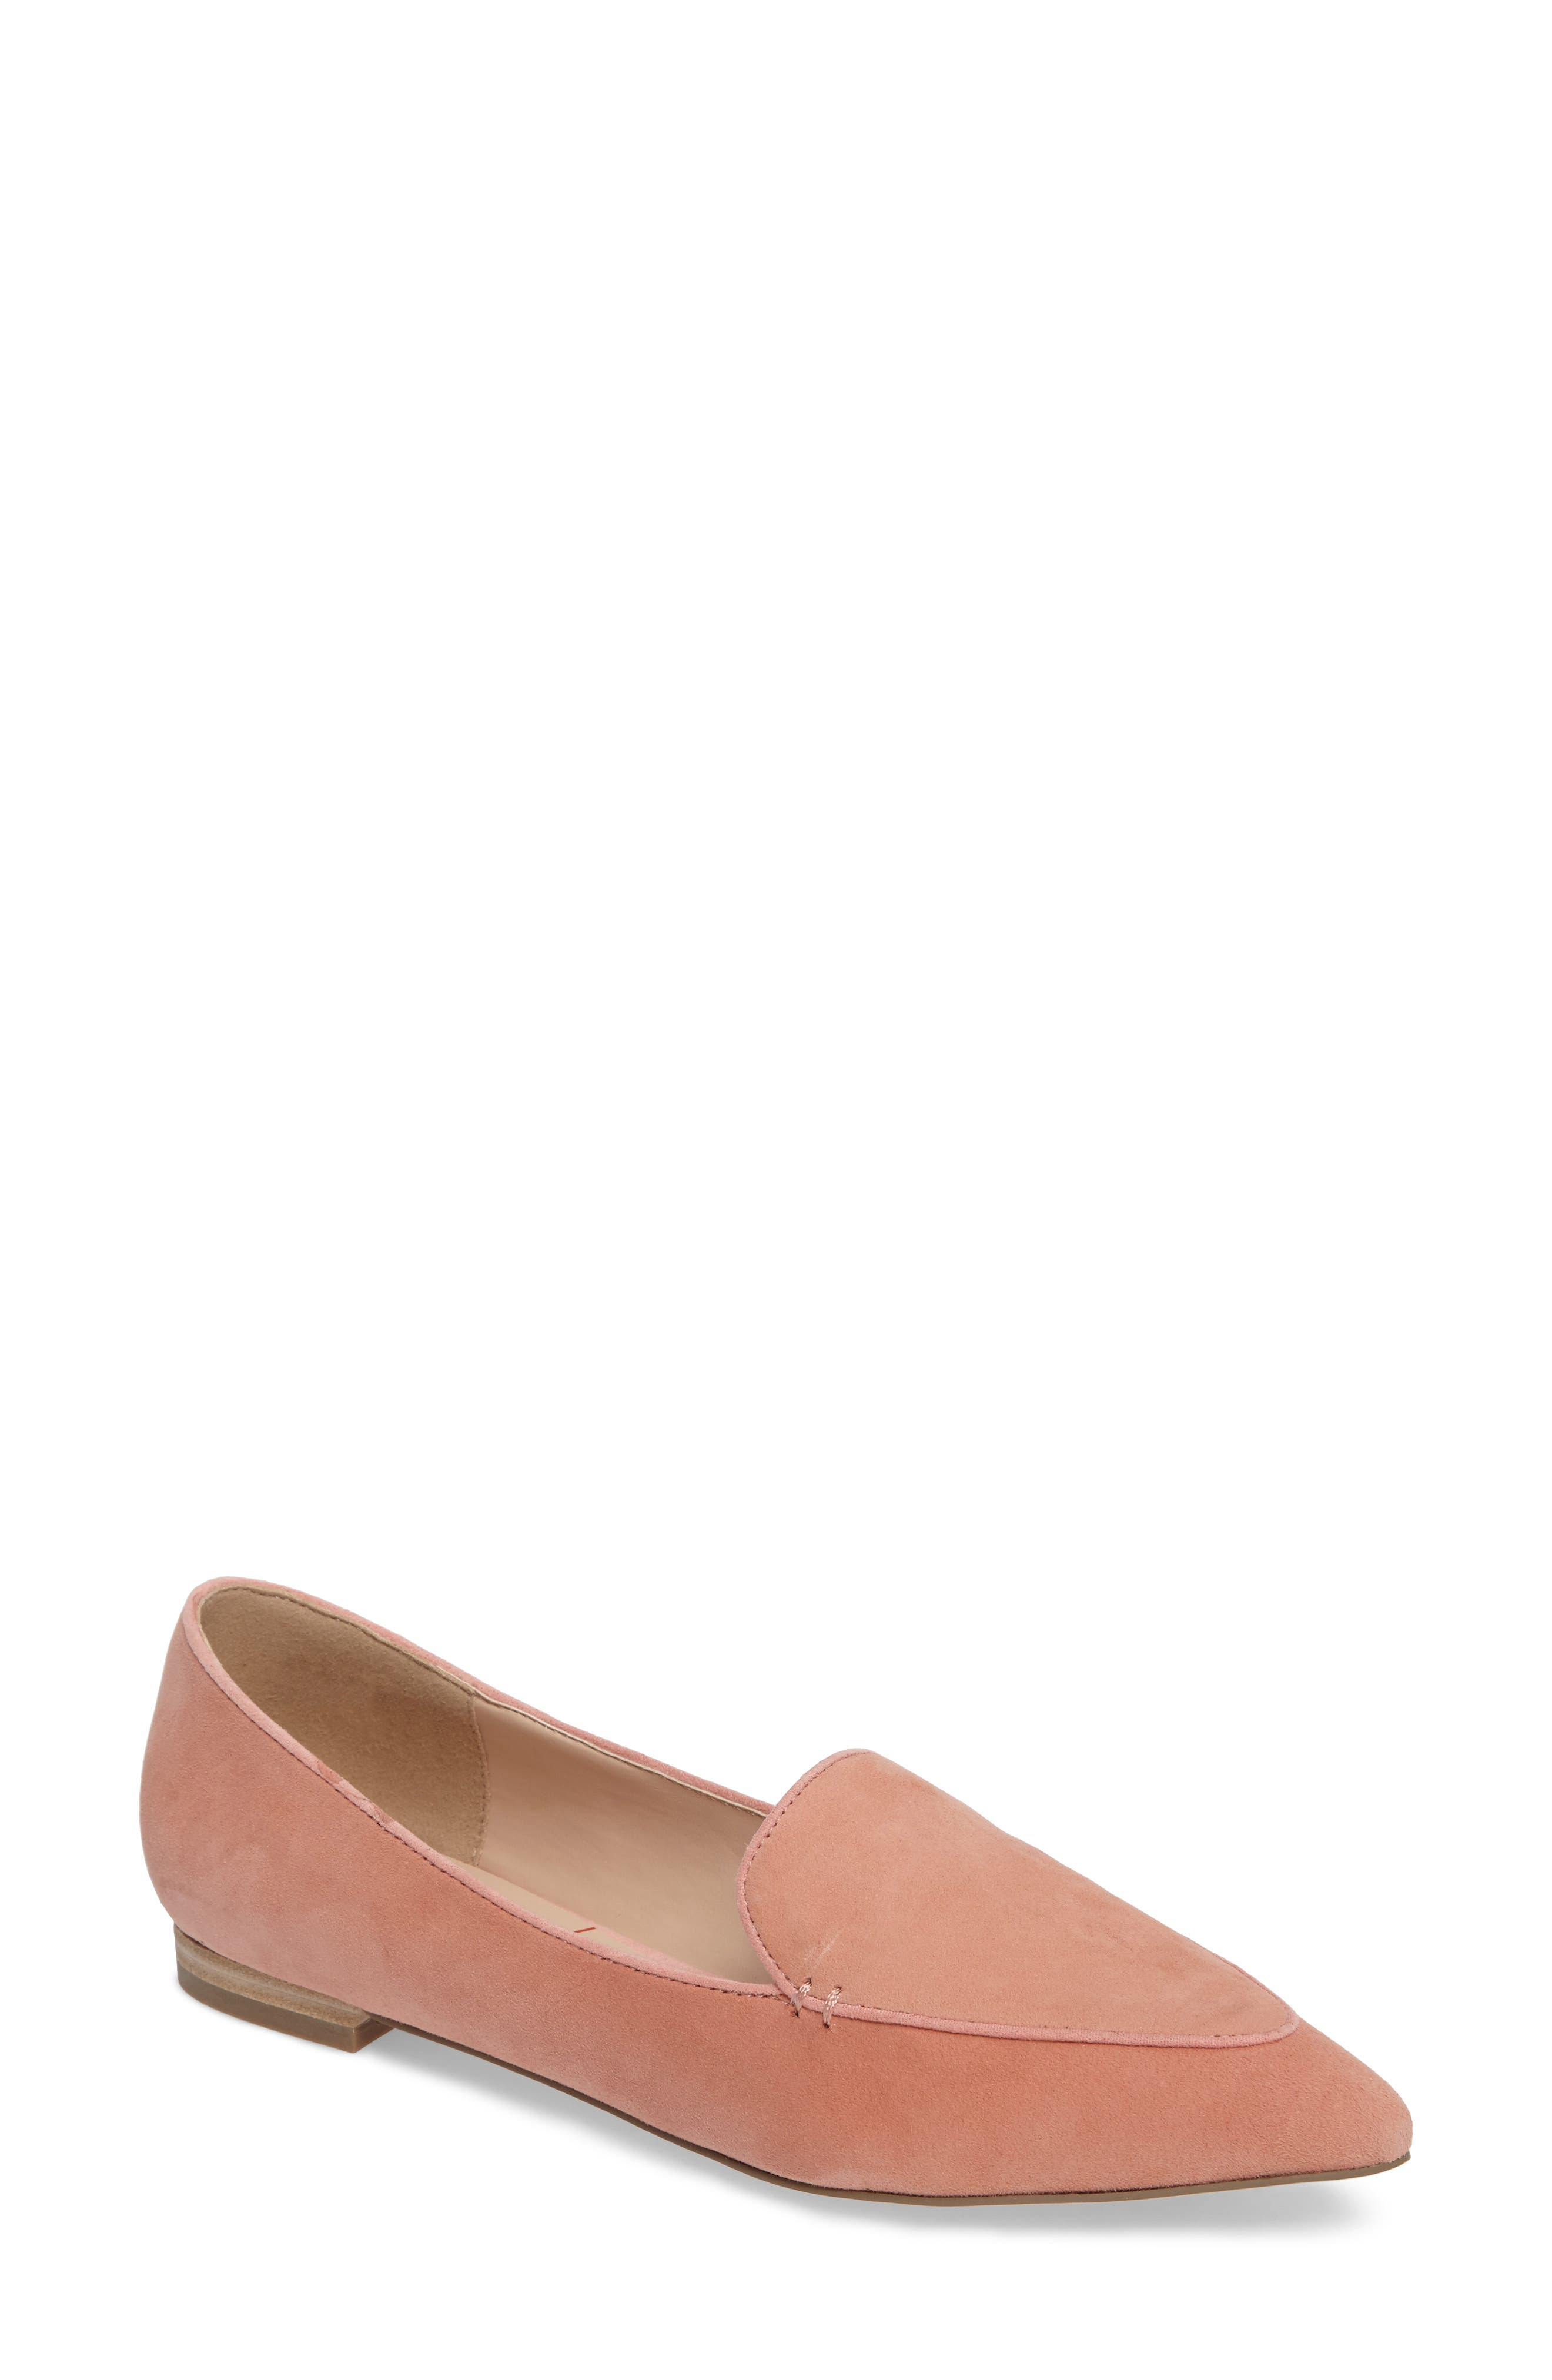 'Cammila' Pointy Toe Loafer,                             Main thumbnail 11, color,